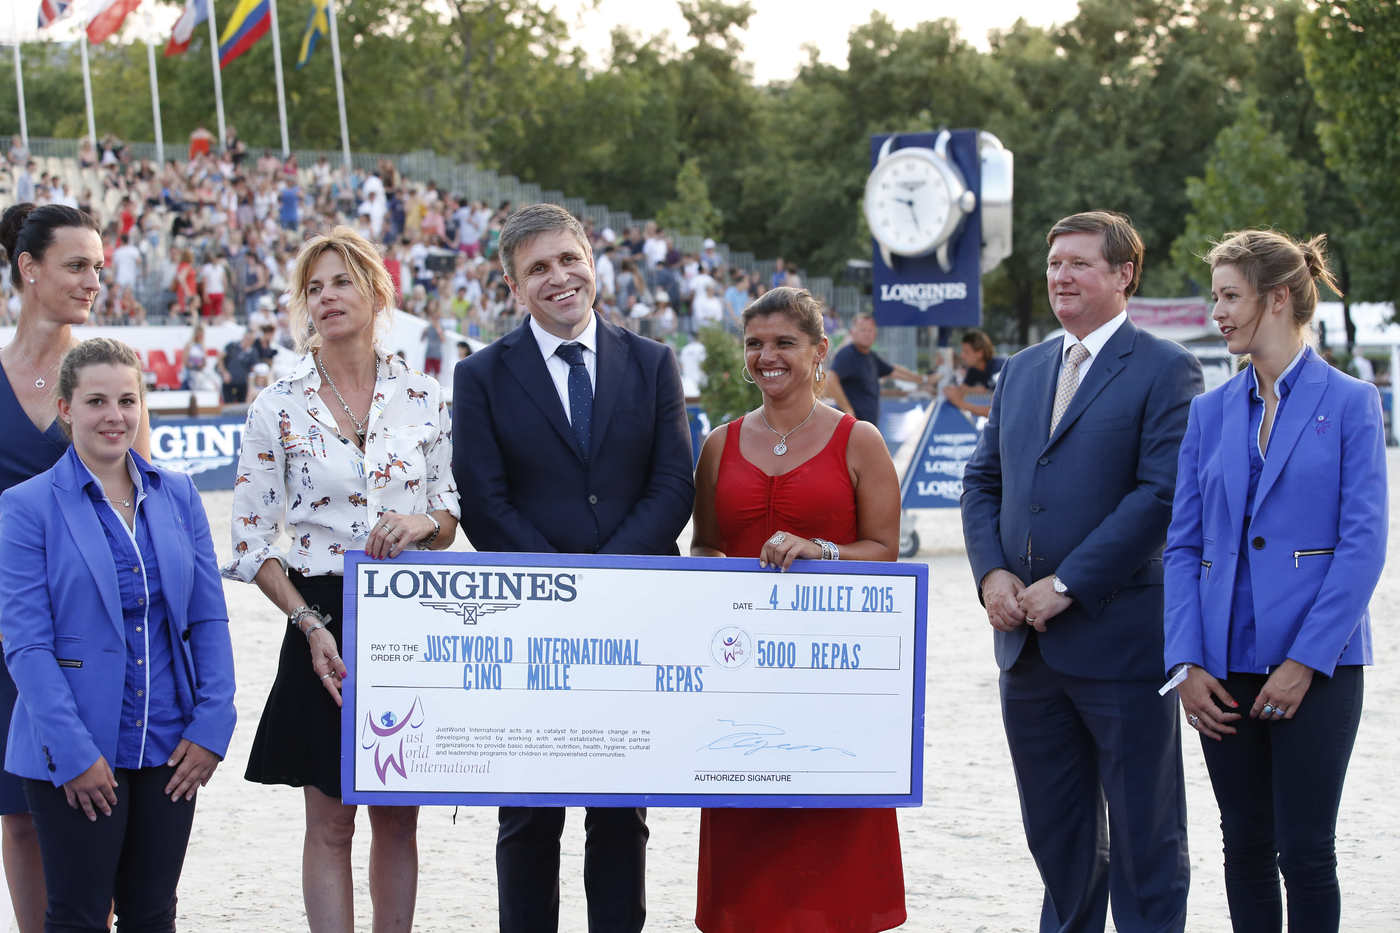 Longines Show Jumping Event: The Longines Paris Eiffel Jumping: a thrilling competition in the very heart of the City of Light 8